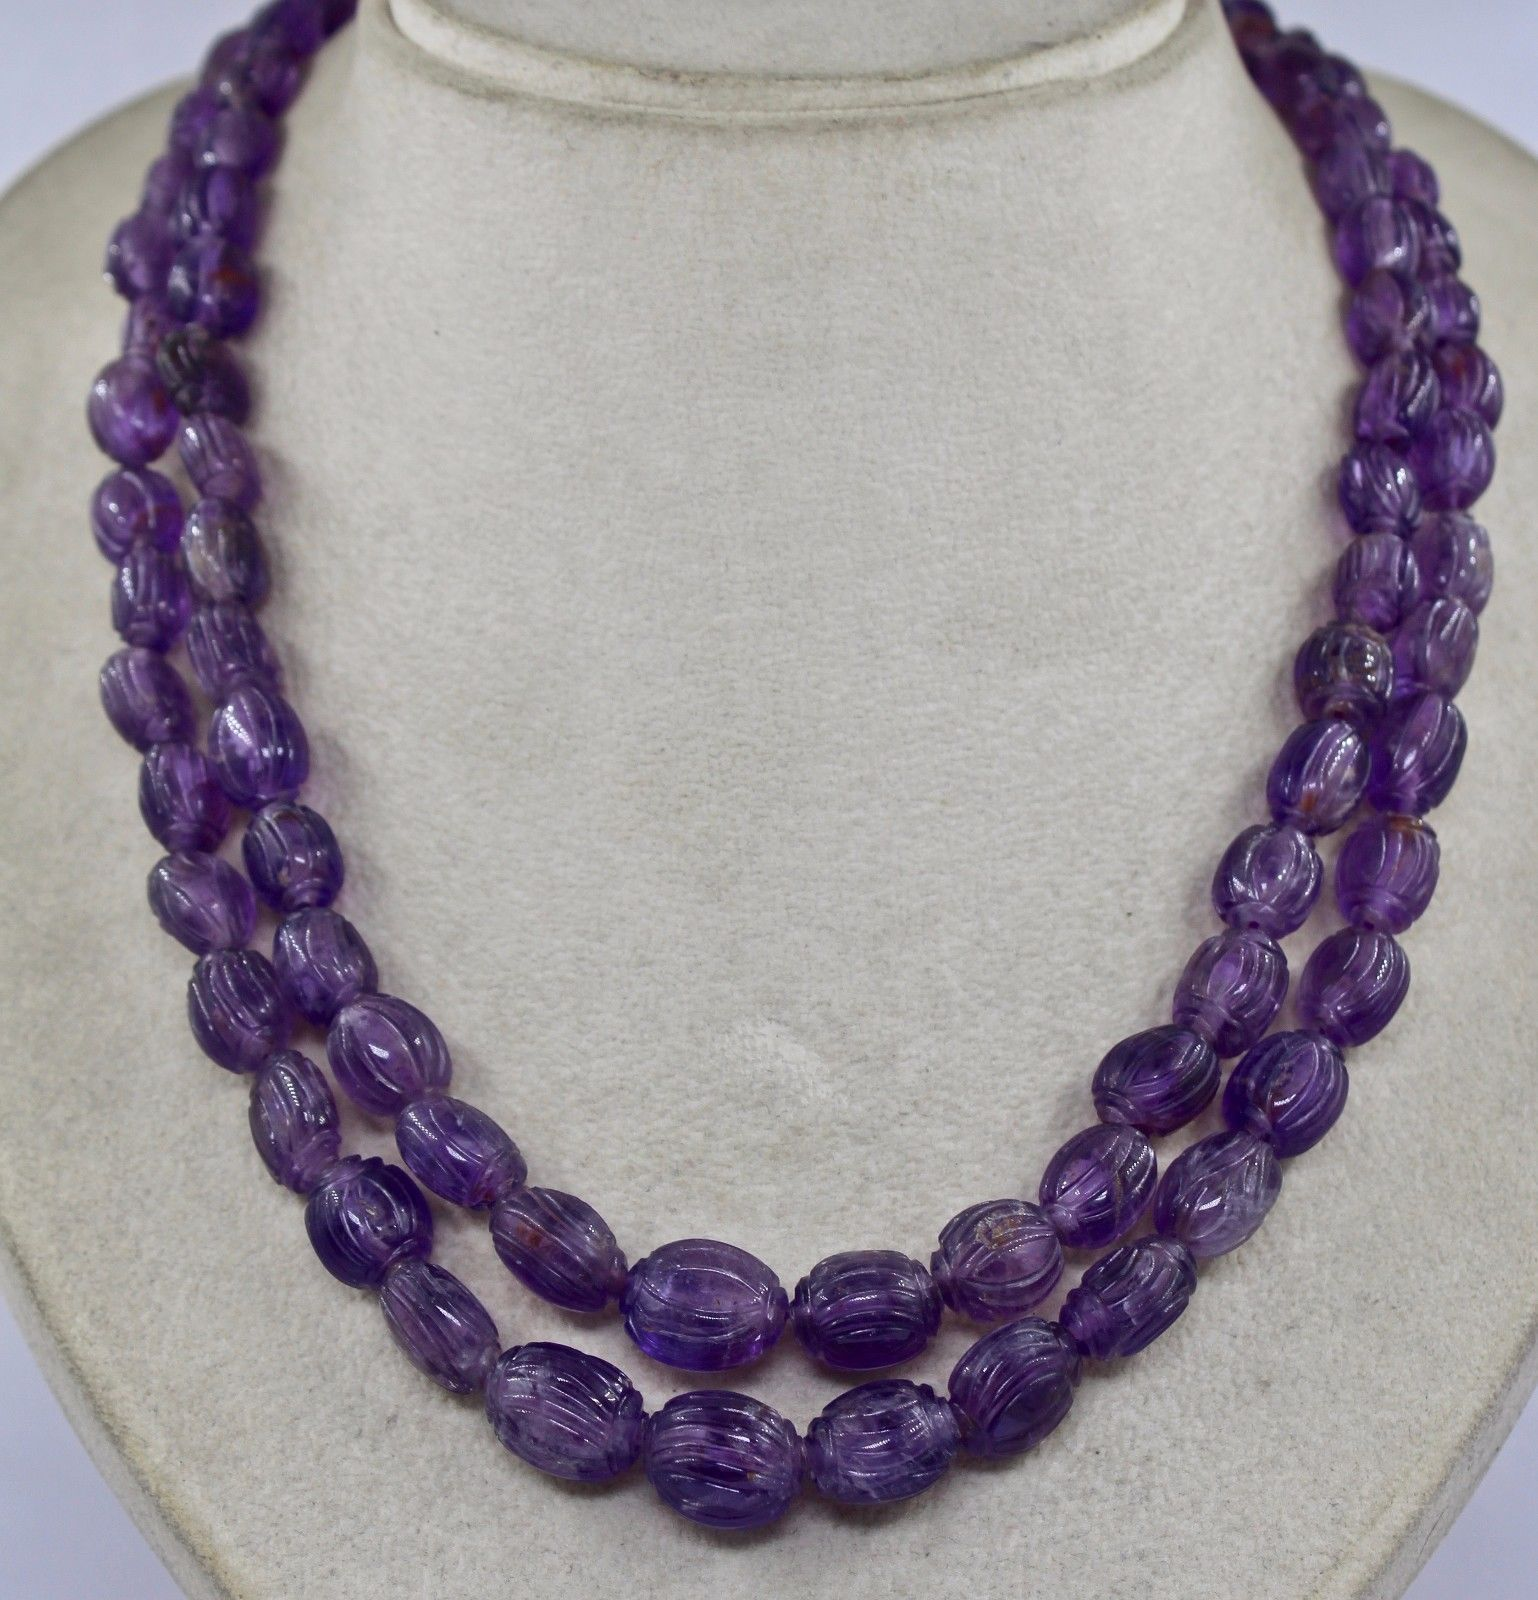 NATURAL AMETHYST BEADS CARVED TUMBLE 2 LINE 588 CARATS GEMSTONE LADIES NECKLACE